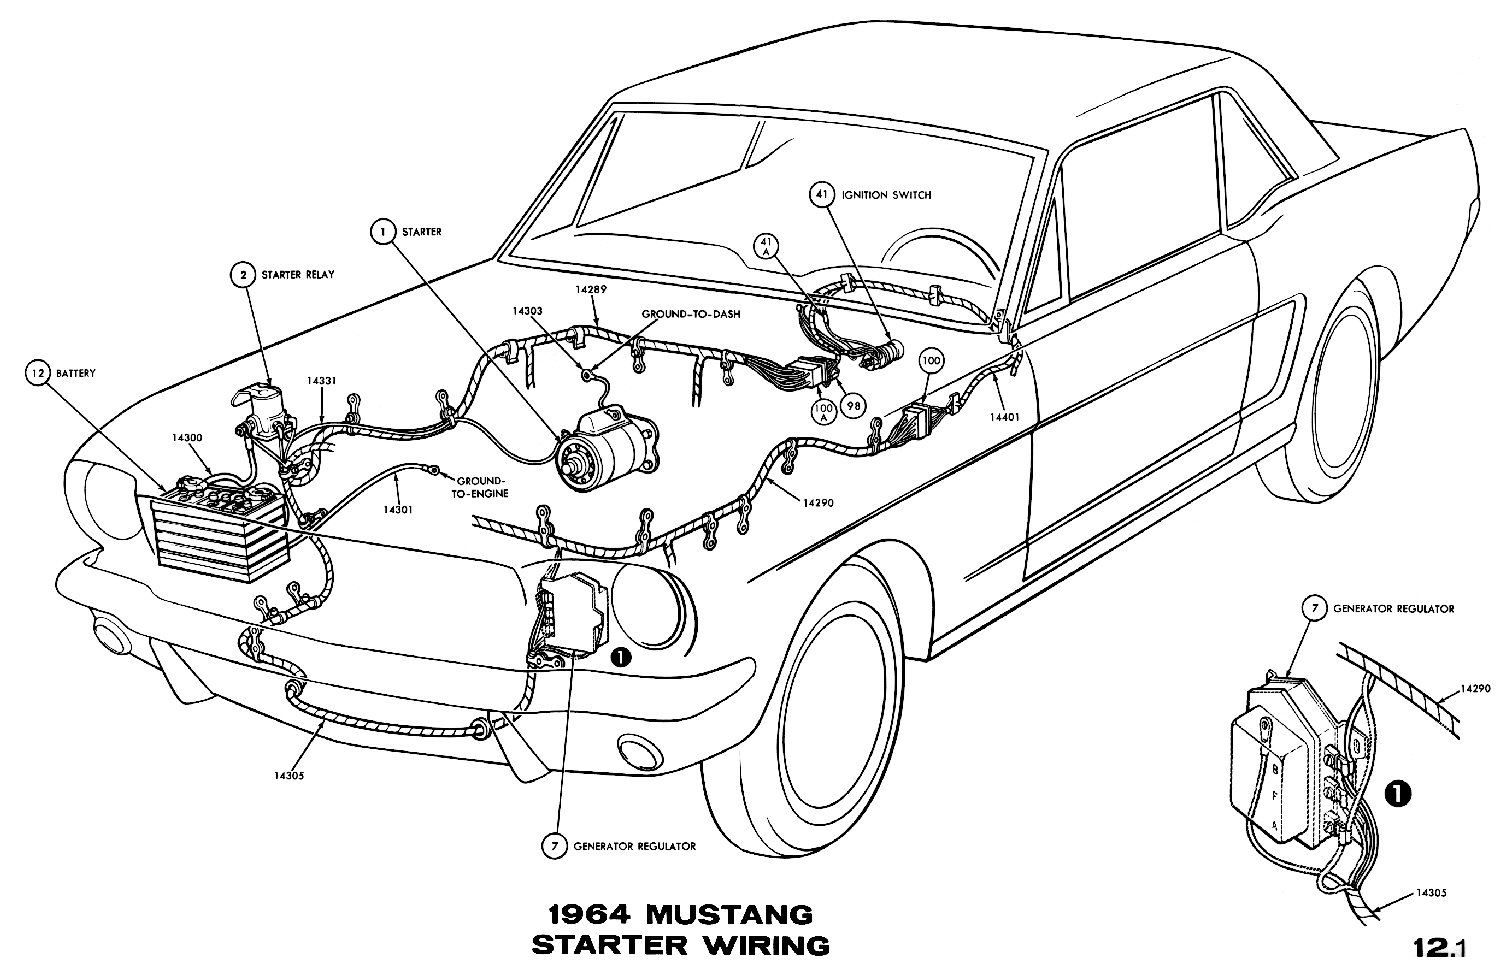 1964 Mustang Wiring Diagrams Average Joe Restoration 78 Ford Fairmont Diagram Sm1964d Starter Pictorial Or Schematic